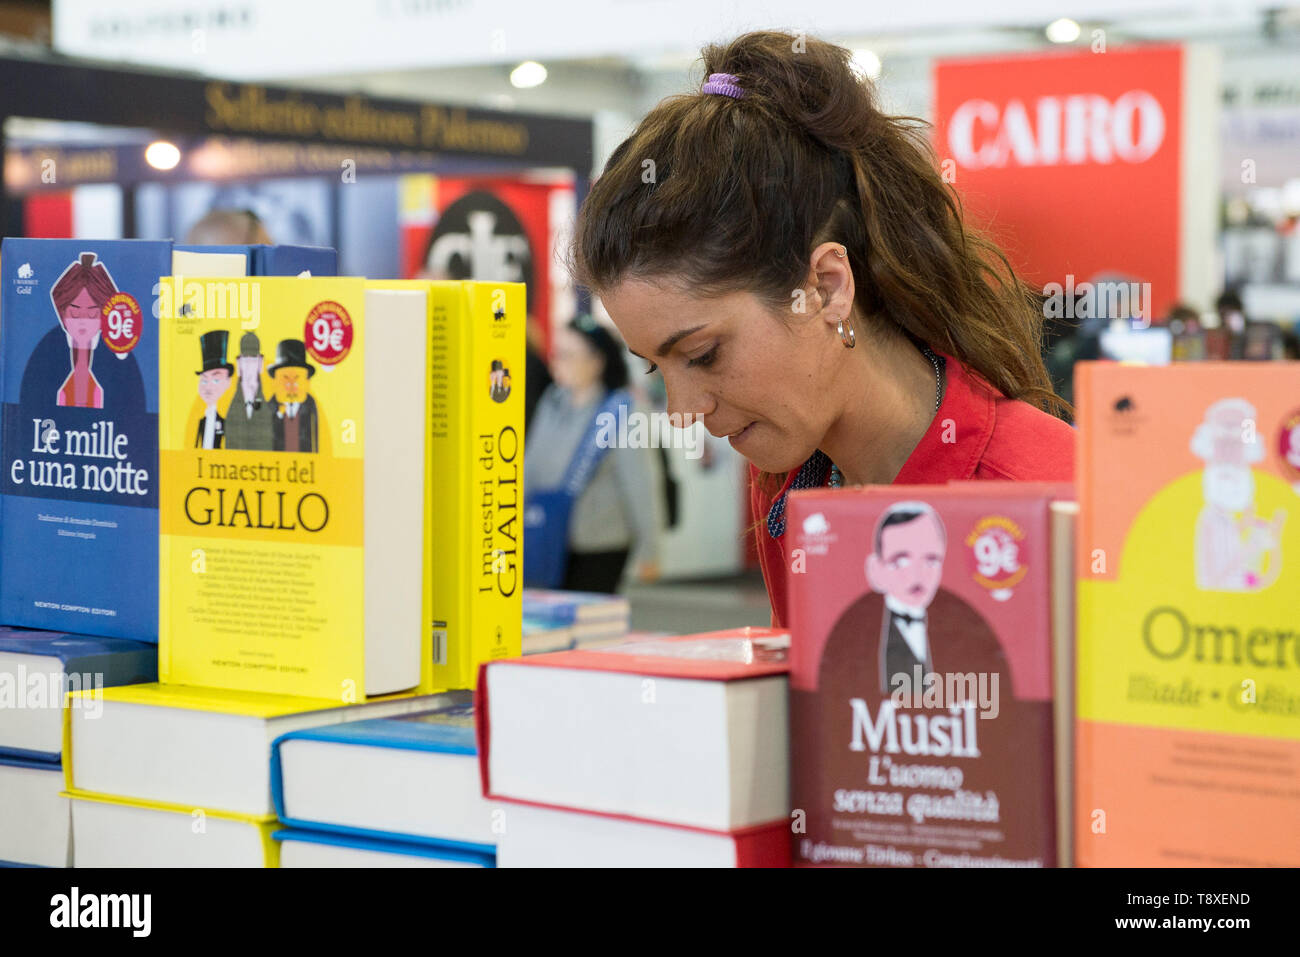 Turin, Piedmont, Italy. 9th May, 2019. Turin, Italy-May 9, 2019: Inauguration of the Turin International Book Fair. Credit: Stefano Guidi/ZUMA Wire/Alamy Live News - Stock Image